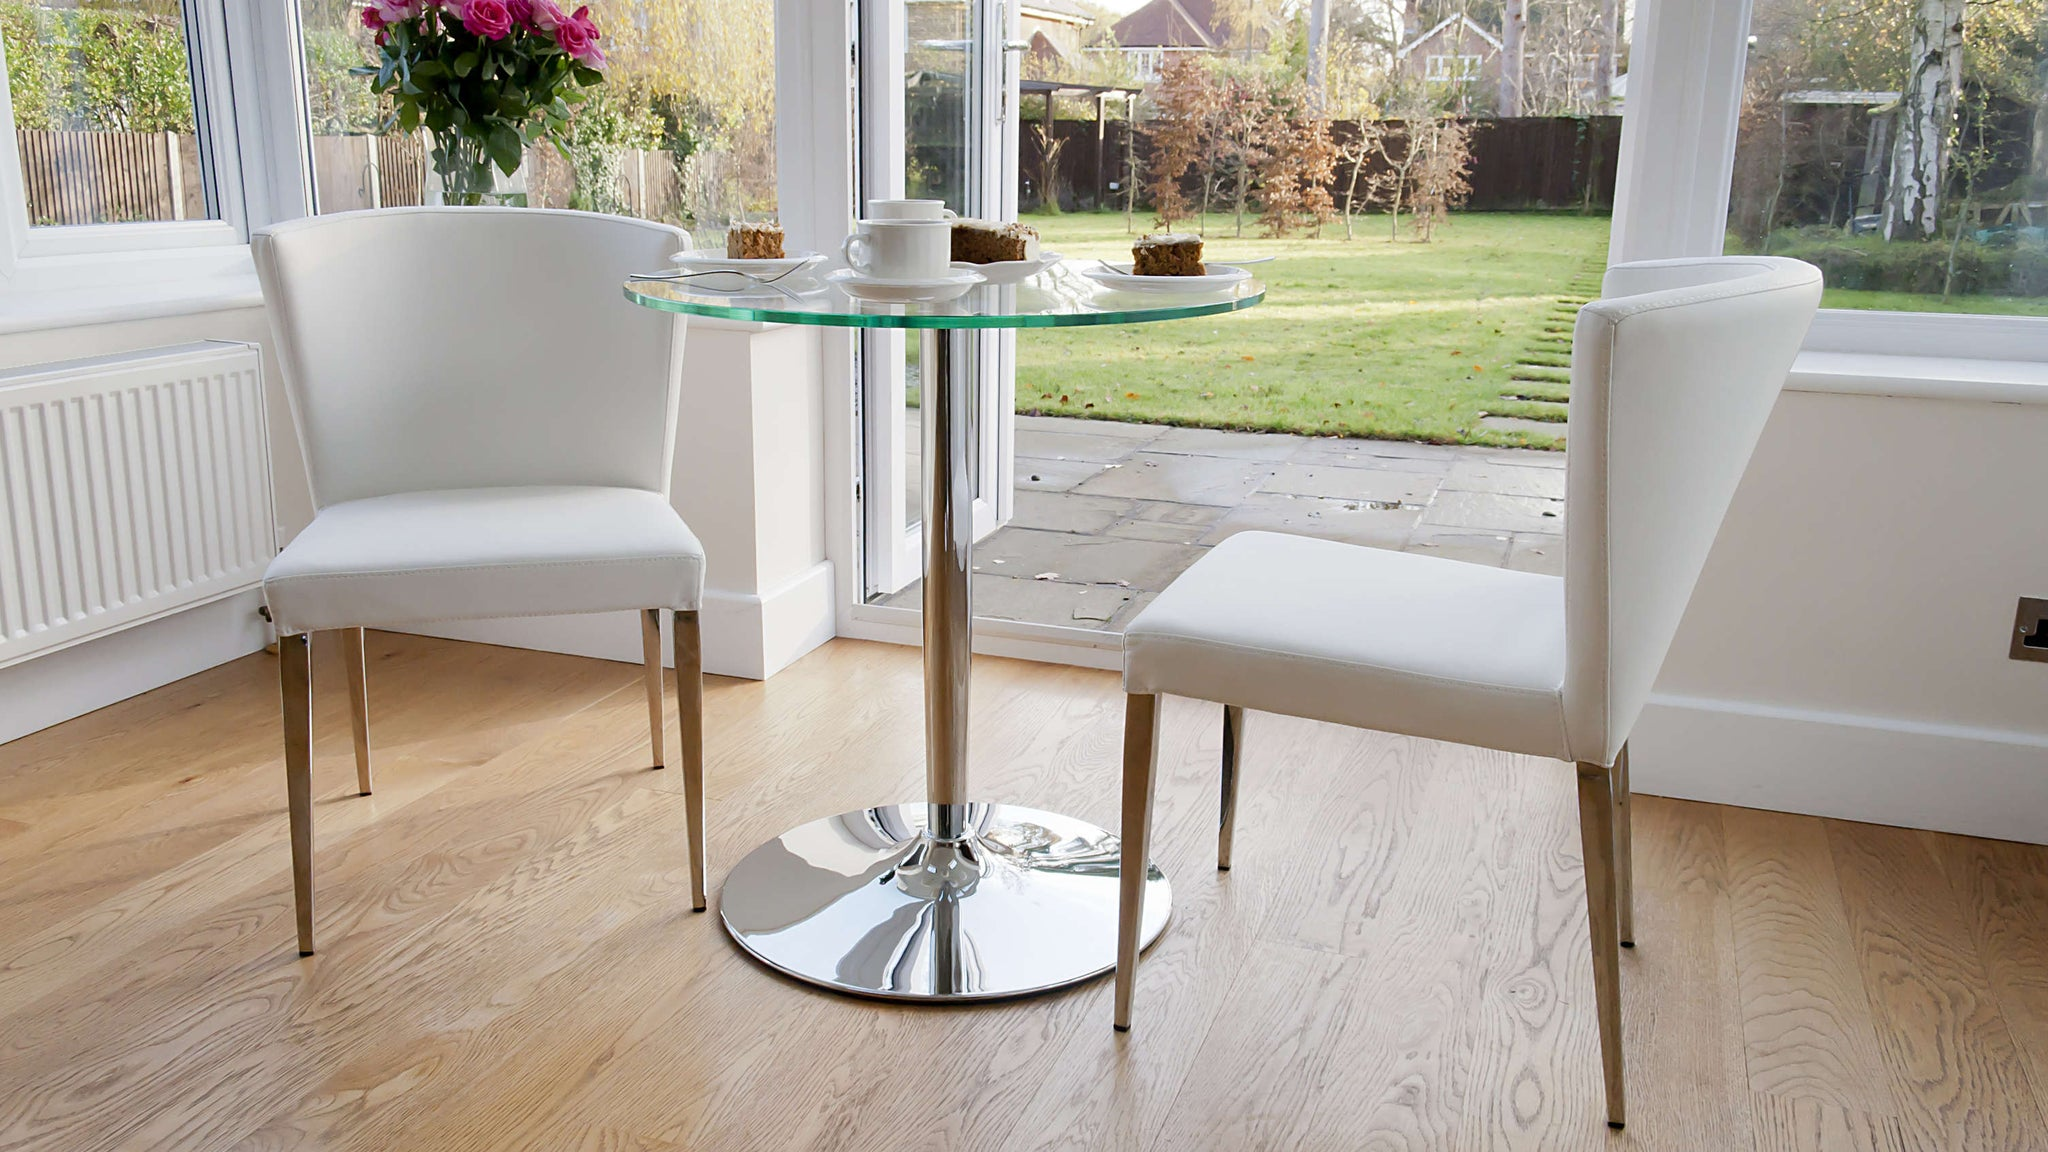 White Faux Leather Dining Chairs UK Delivery